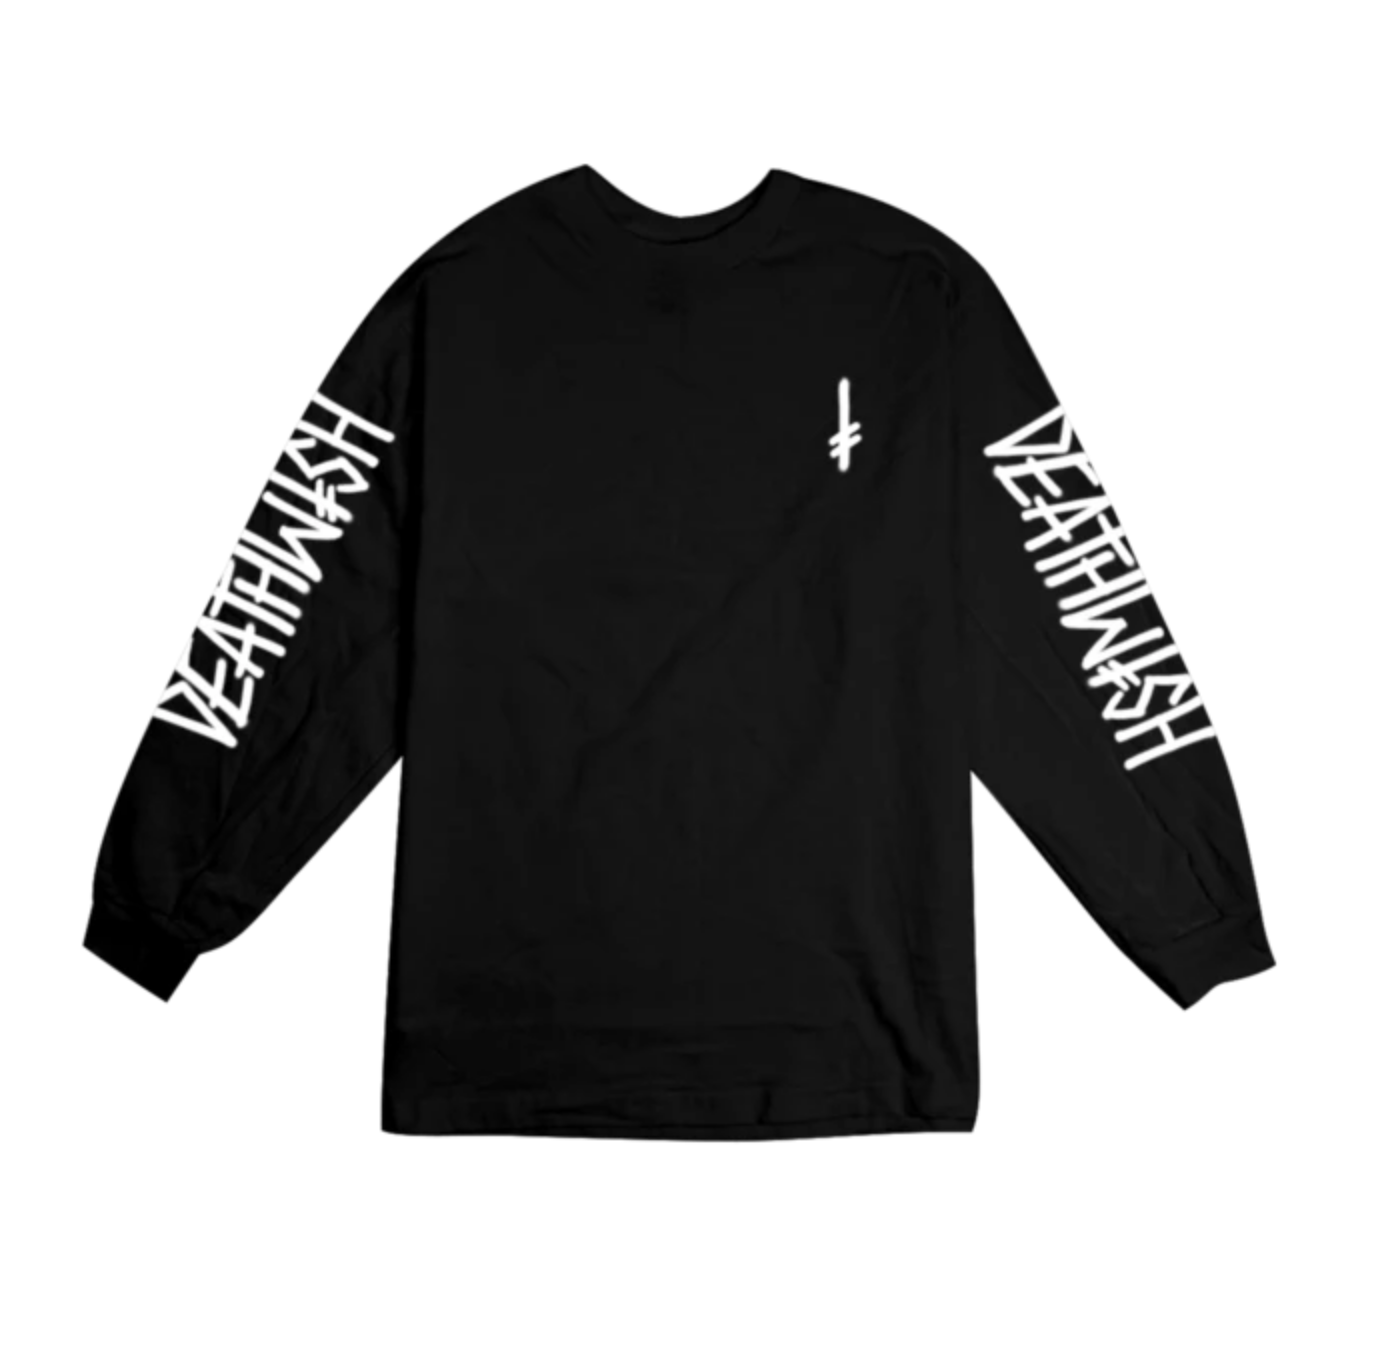 Deathwish Skateboards Landmark Black L/S Tee